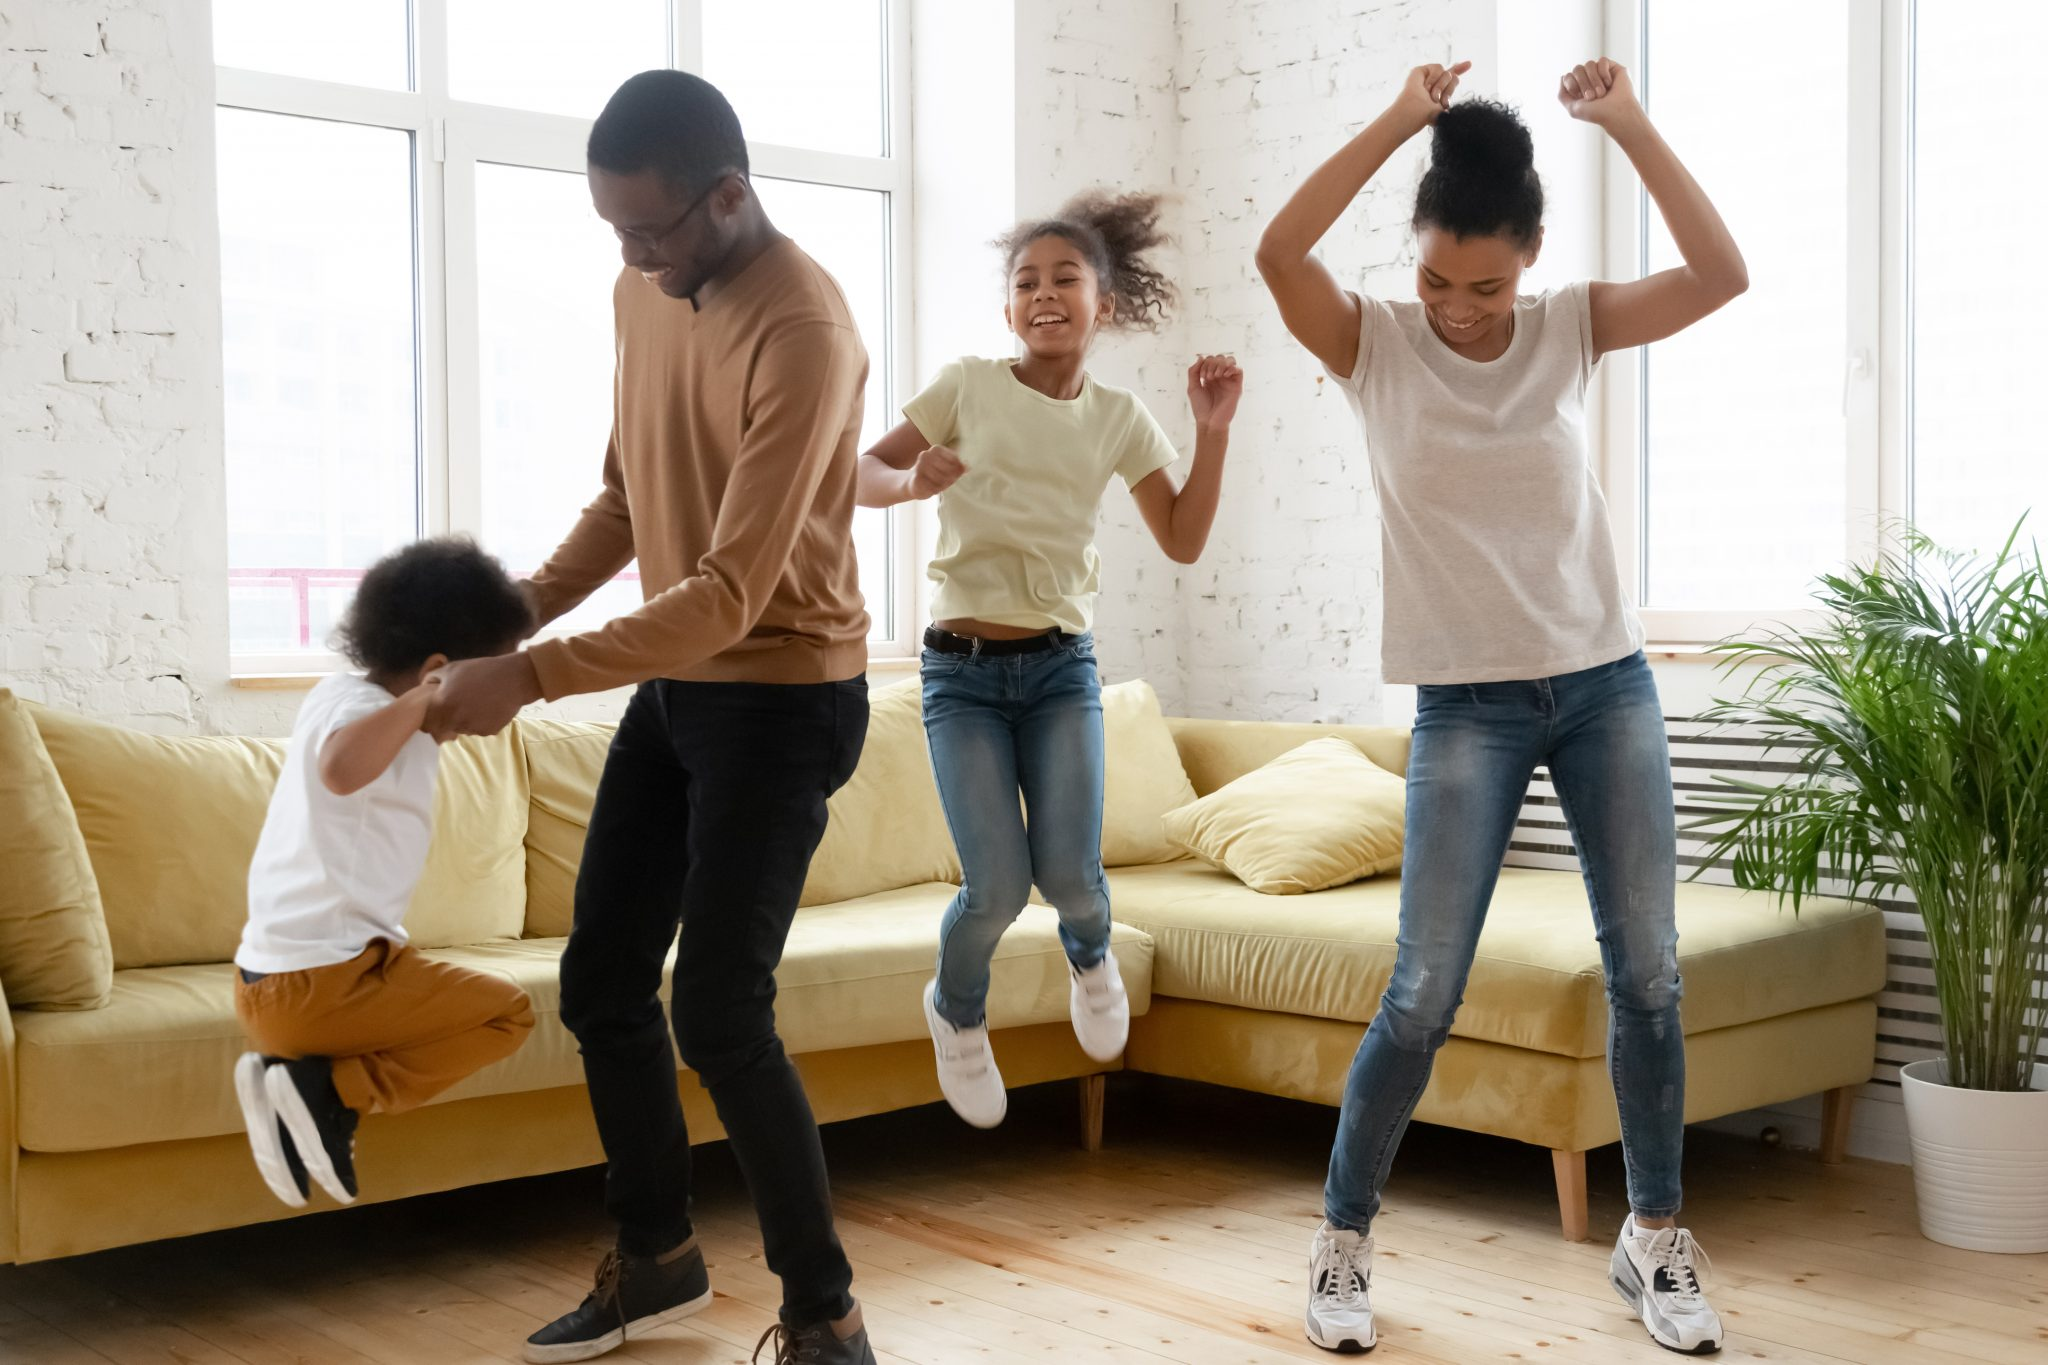 Overjoyed african American young family have fun enjoy leisure weekend at home together, happy biracial parents with small preschooler kids dance jump entertain in living room, stress free concept